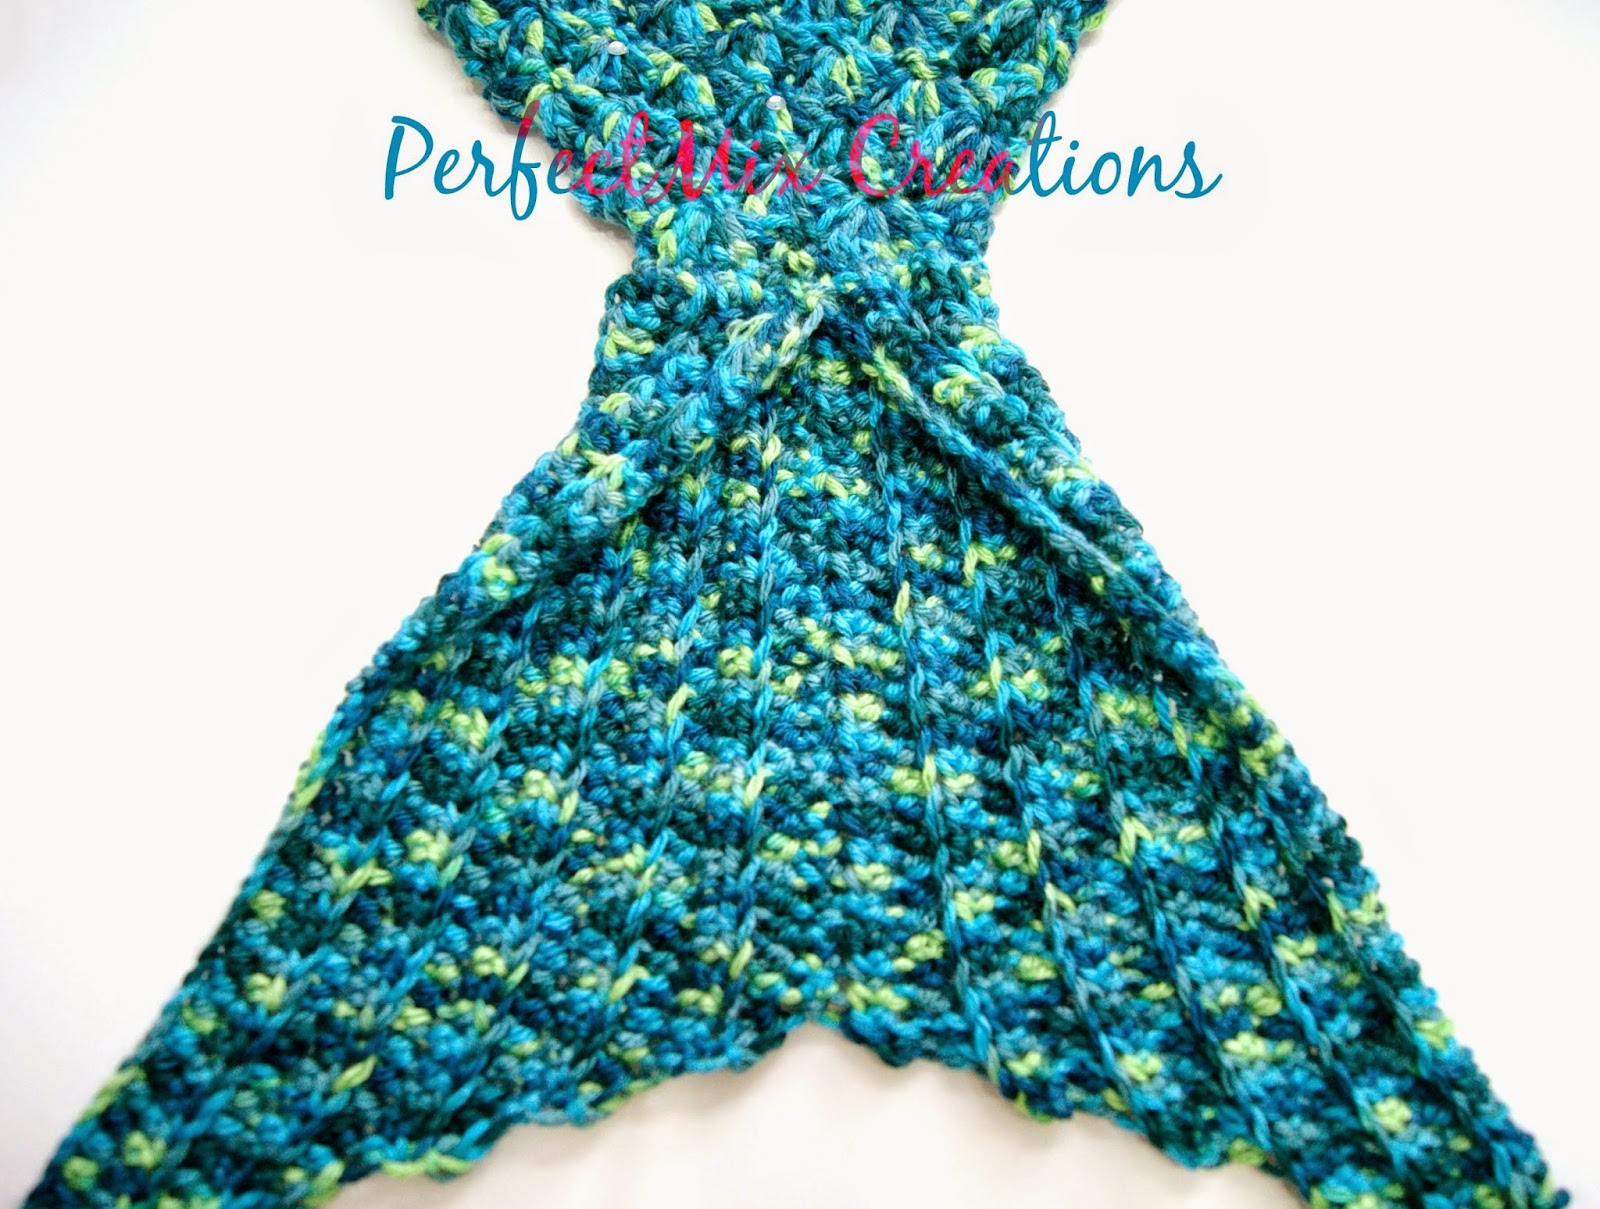 Crochet Patterns Mermaid : Mixin it up with DaPerfectMix: Crochet Mermaid Tail Fin Pattern